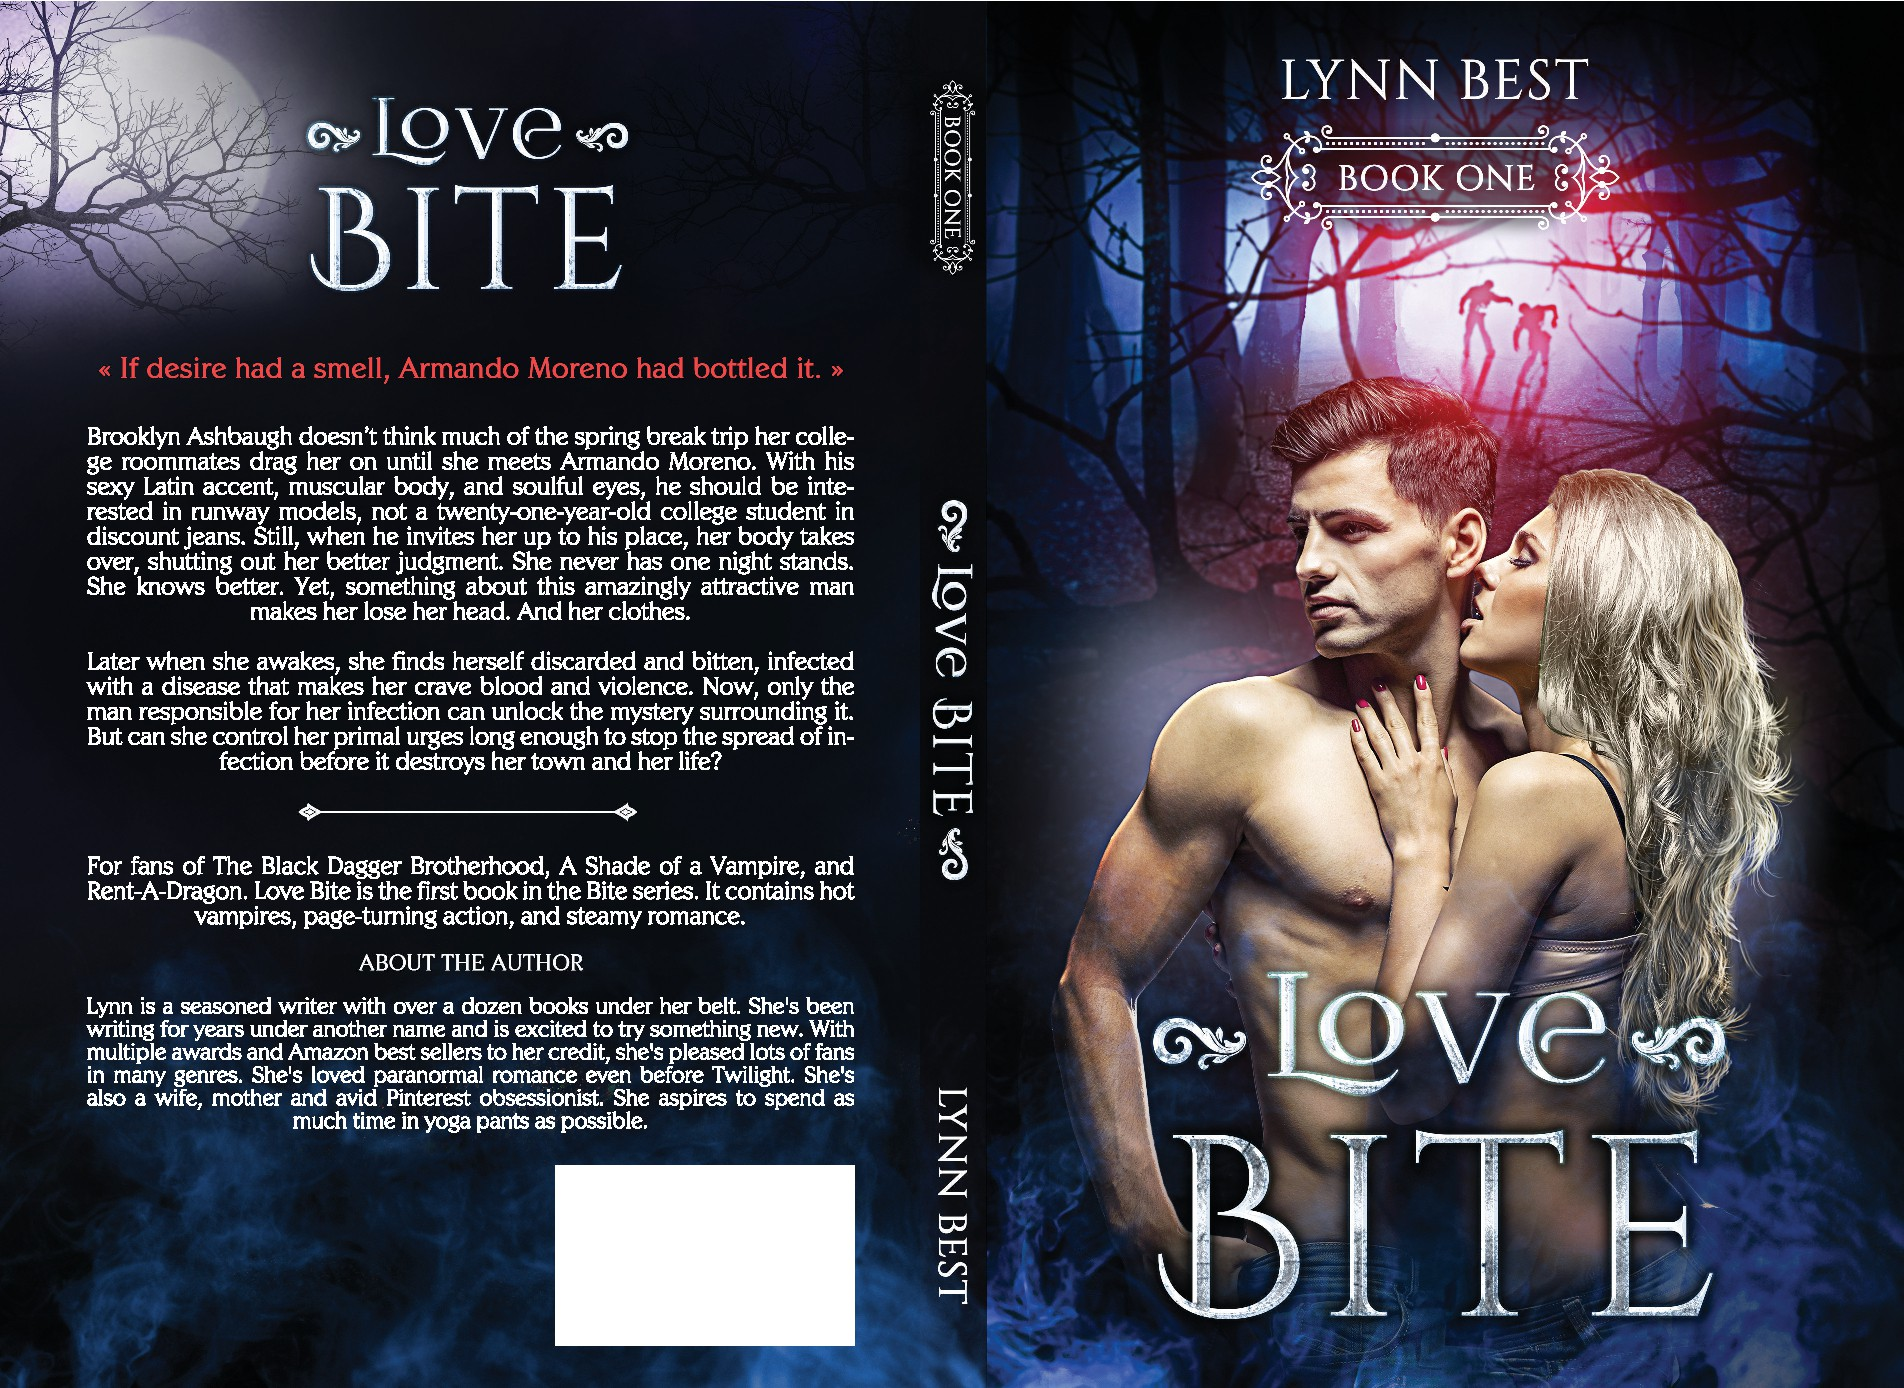 First of many: Steamy Paranormal Romance Vampire Book